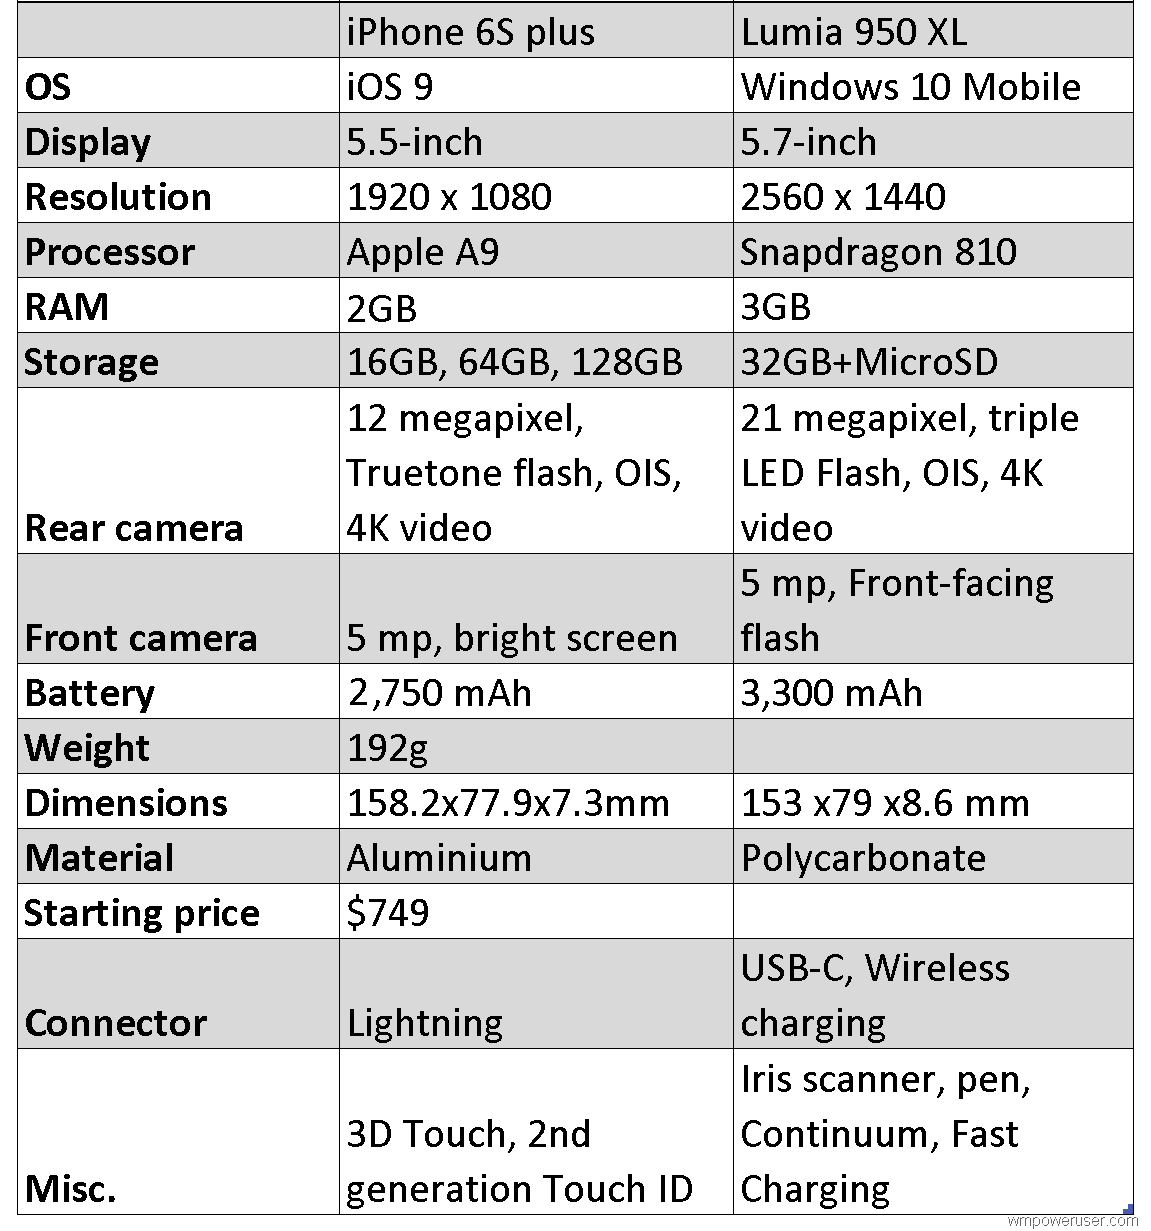 iphone 6s plus specs iphone 6s plus vs lumia 950 xl specs comparison mspoweruser 1548